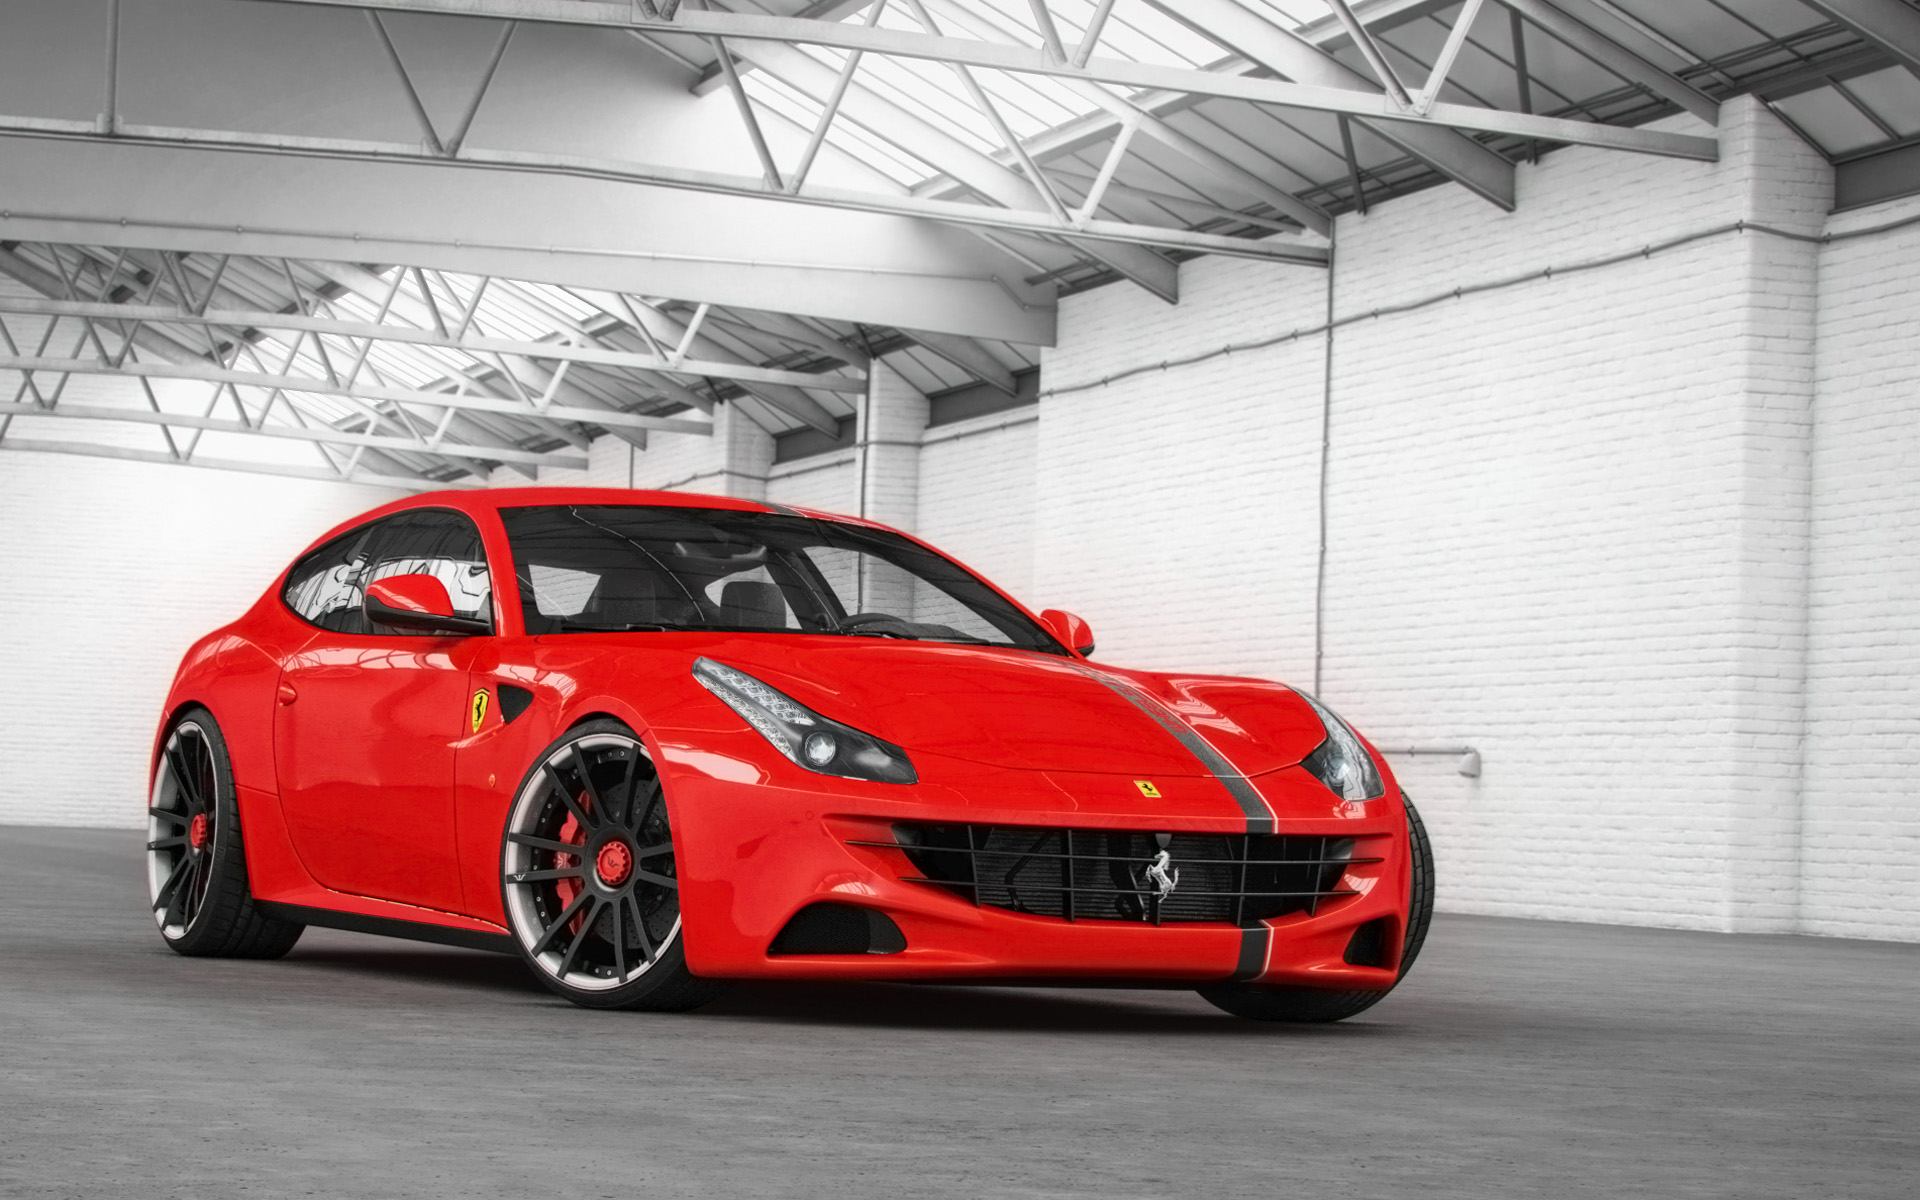 1920x1200 - Ferrari FF Wallpapers 28